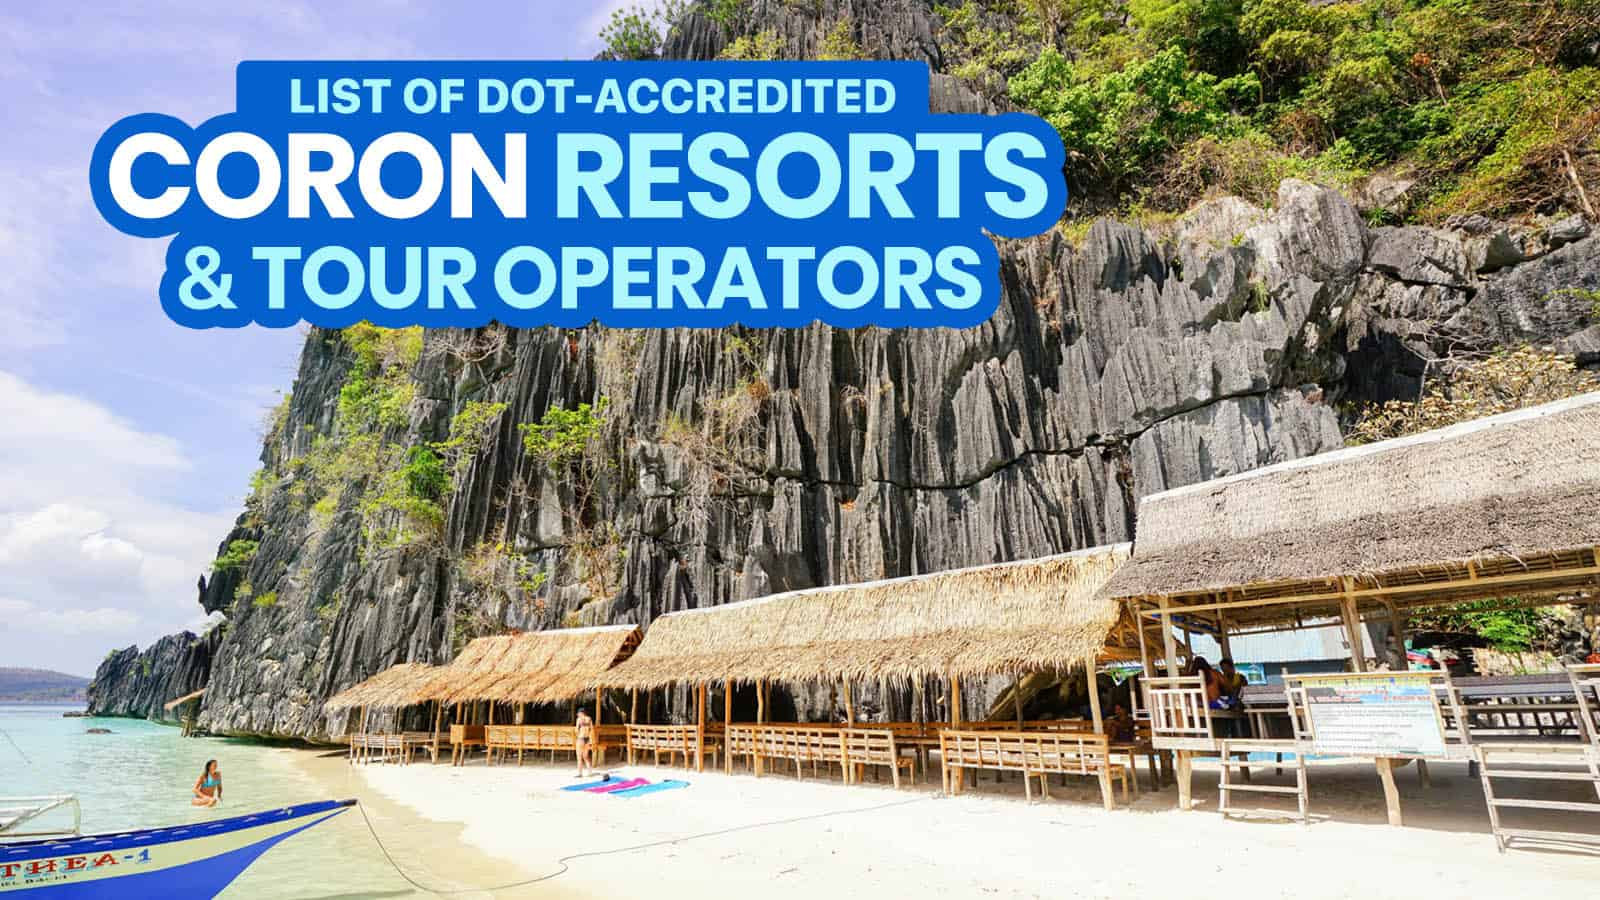 2021 List of DOT-Accredited CORON Resorts, Hotels & Tour Operators (Open Now or Soon)